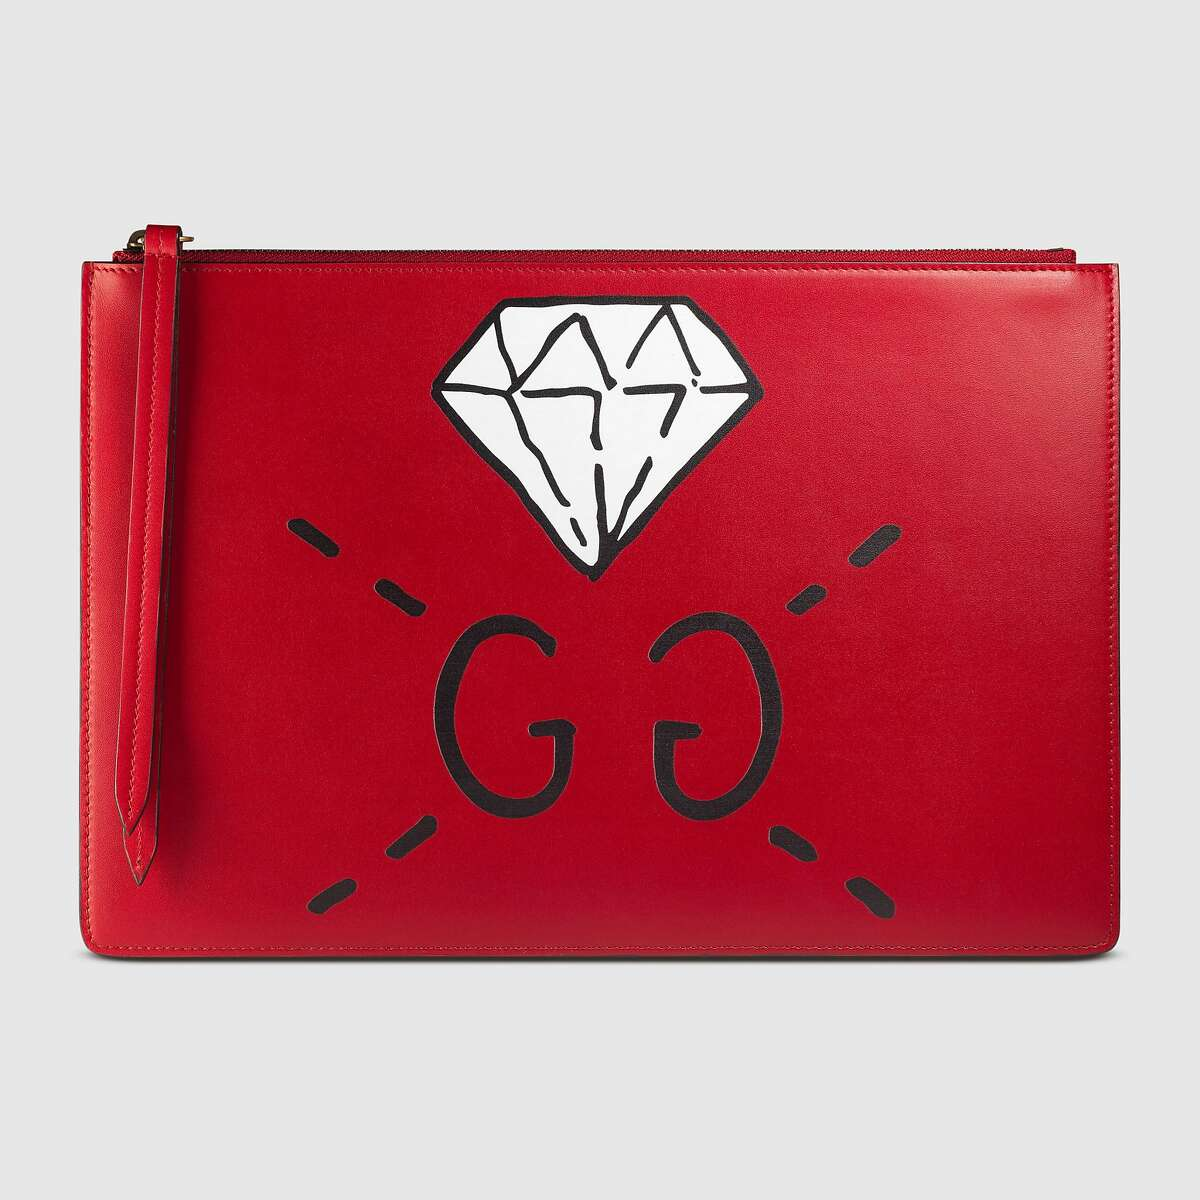 Last September, Alessandro Michele of Gucci introduced his �GucciGhost� program. The line features graffitied interpretations of Gucci�s double-G logo, and other motifs, by a man named Trevor Andrews.